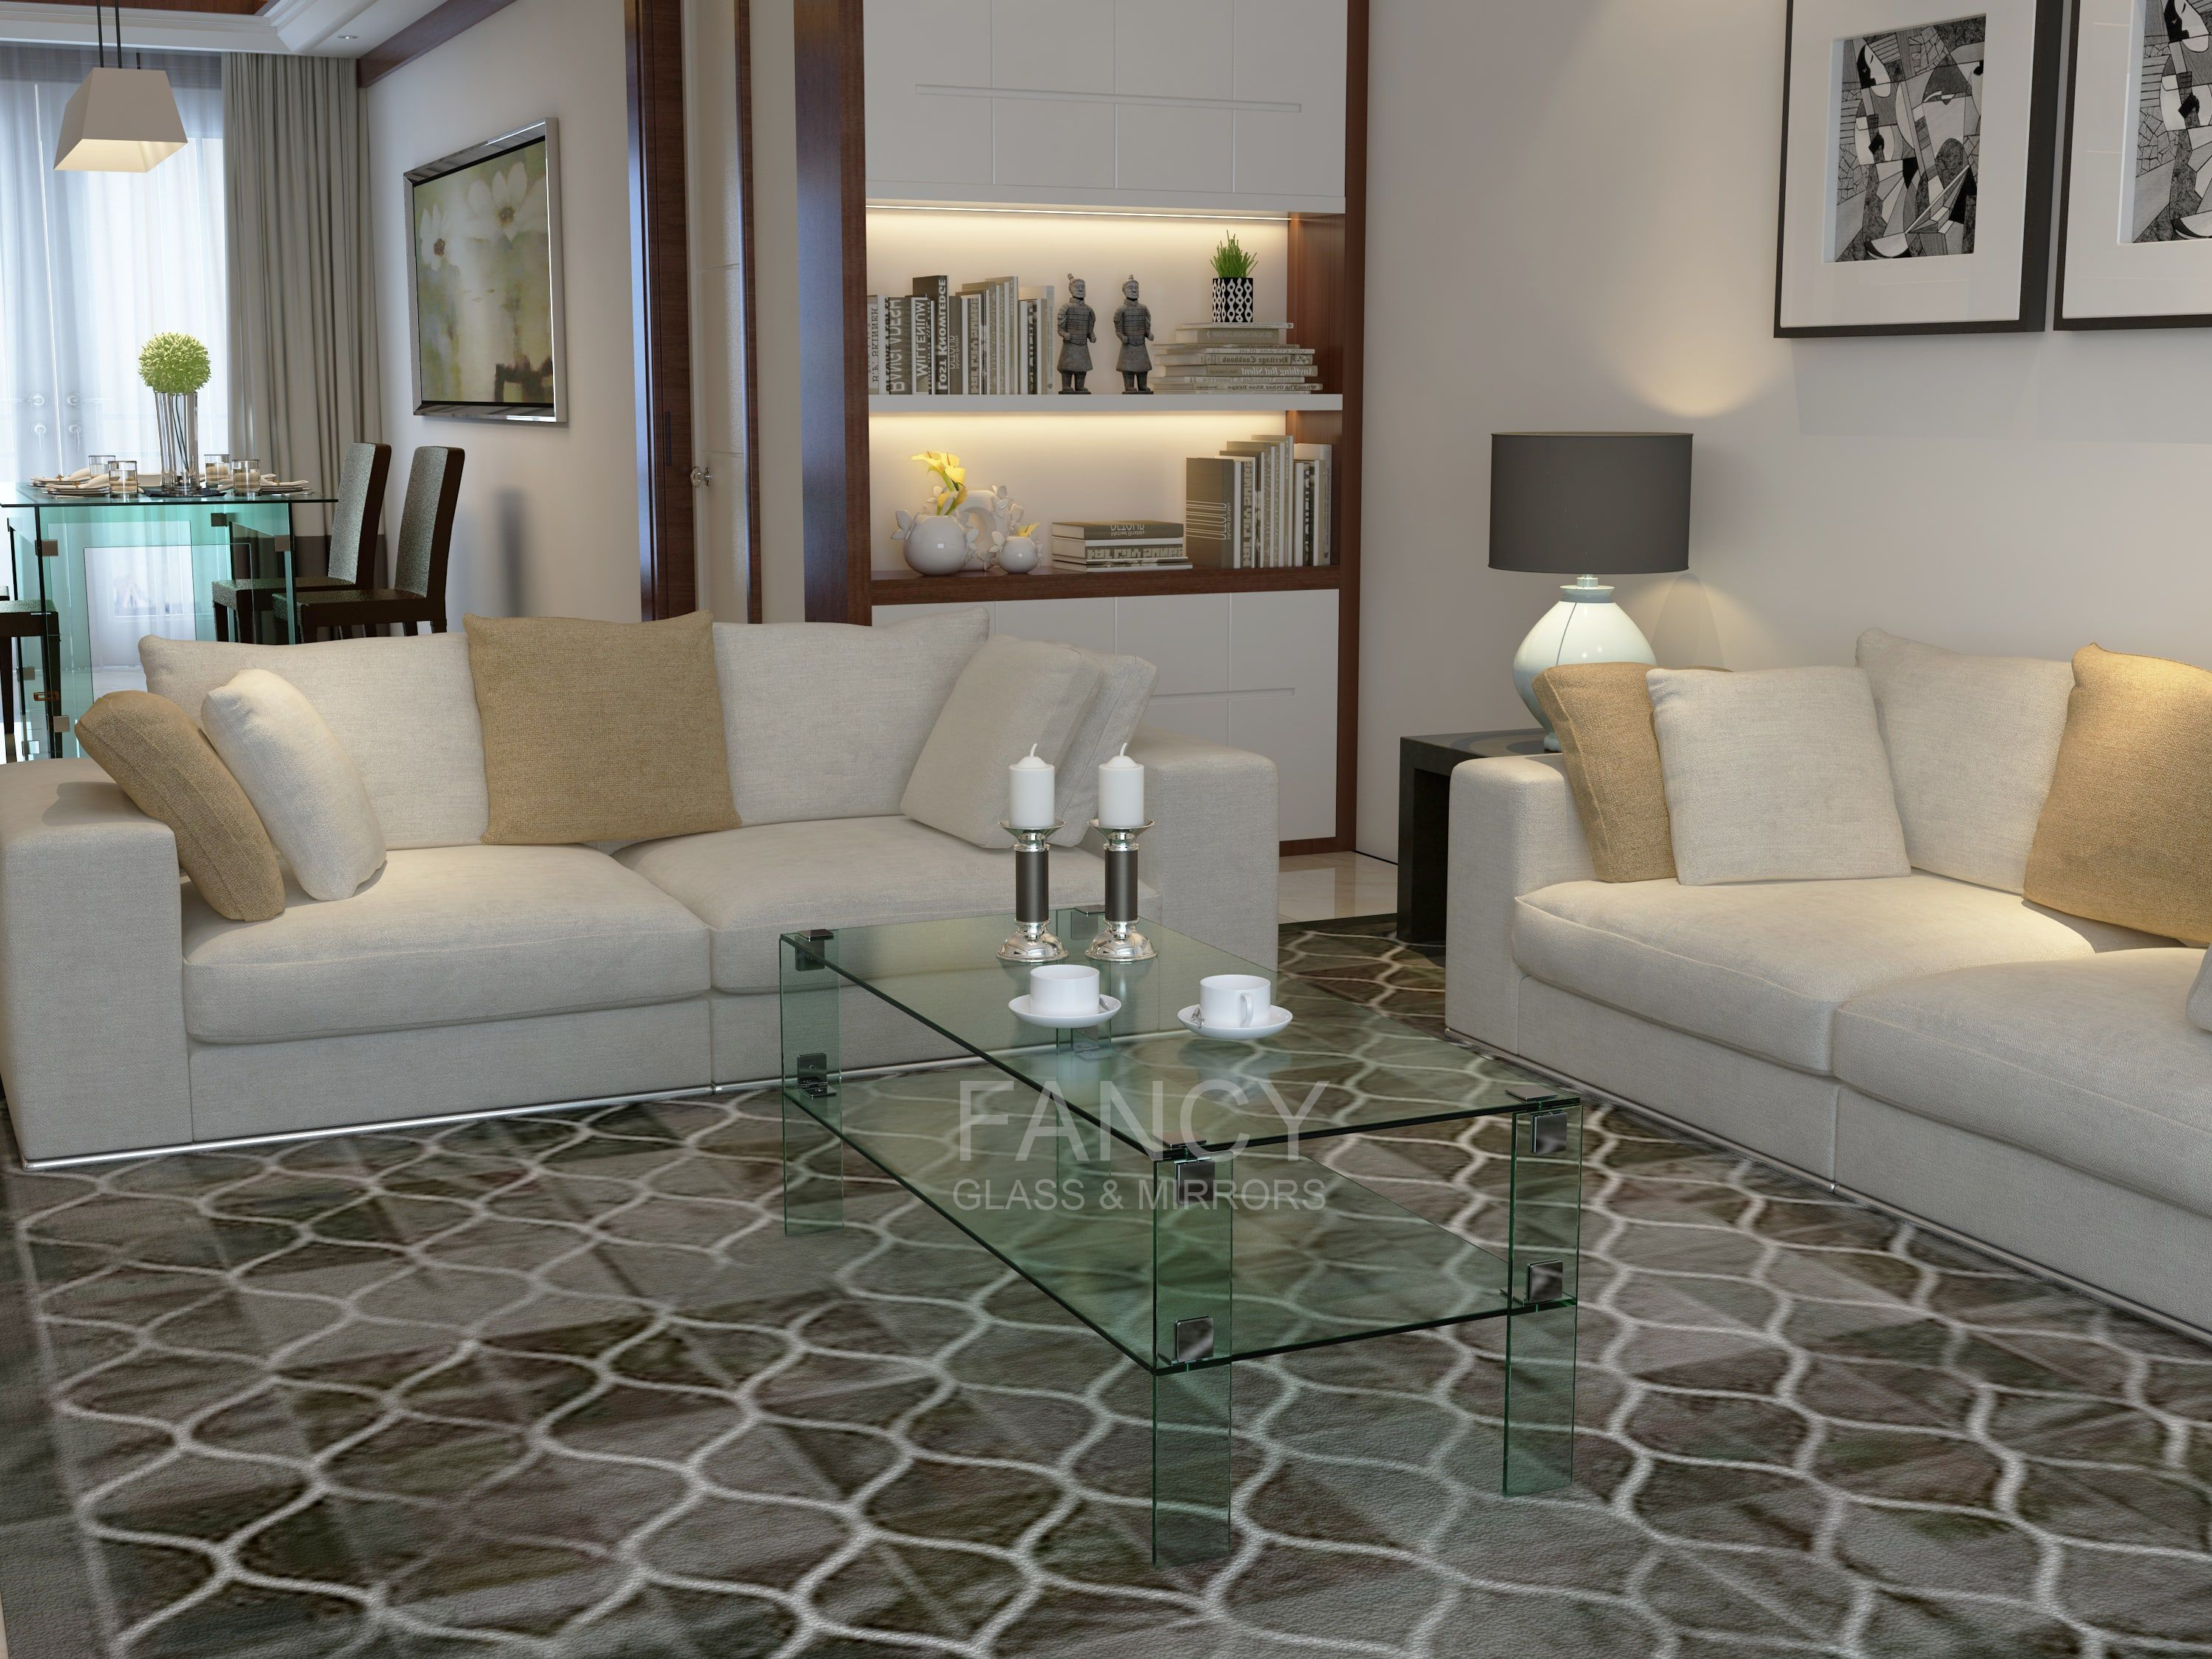 Marocco Two Tier Glass Coffee Table Is An Example Of A Great Combination Of Style And Comfort In One Piece Si Coffee Table Glass Furniture Glass Coffee Table [ 2250 x 3000 Pixel ]